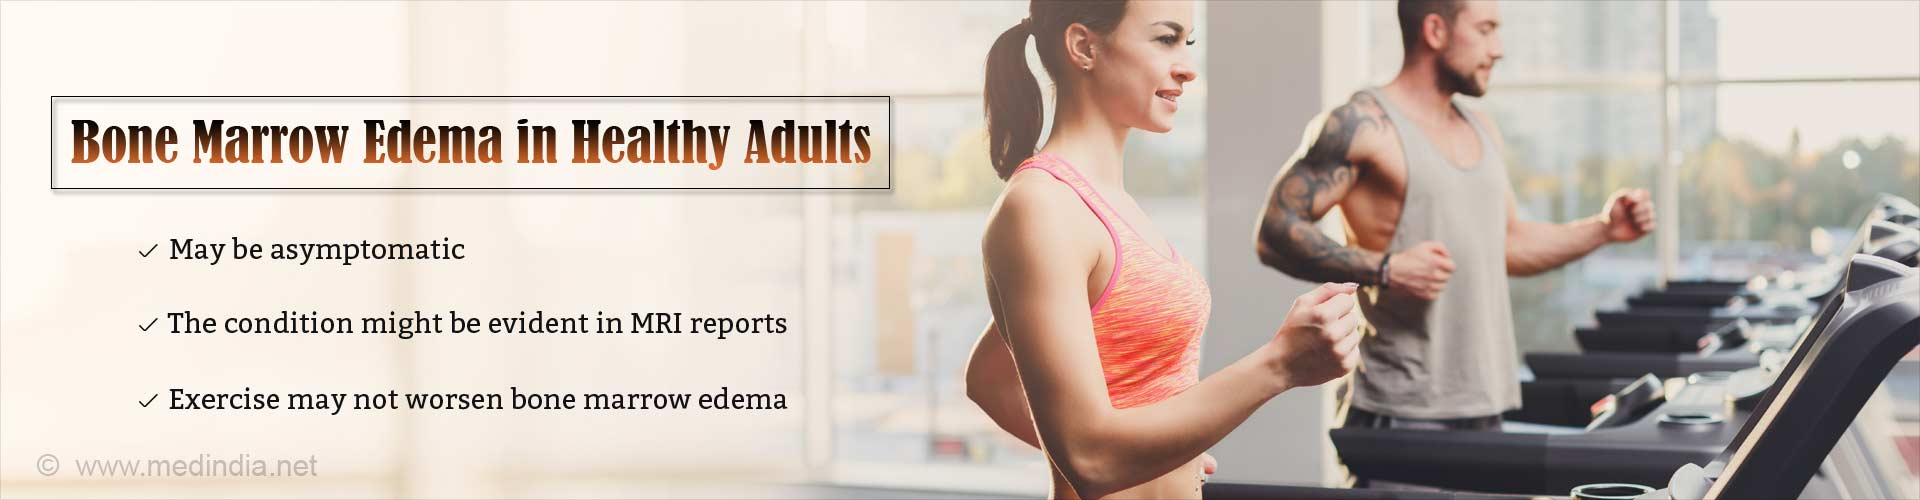 Bone Marrow Edema does not get worse due to Exercise